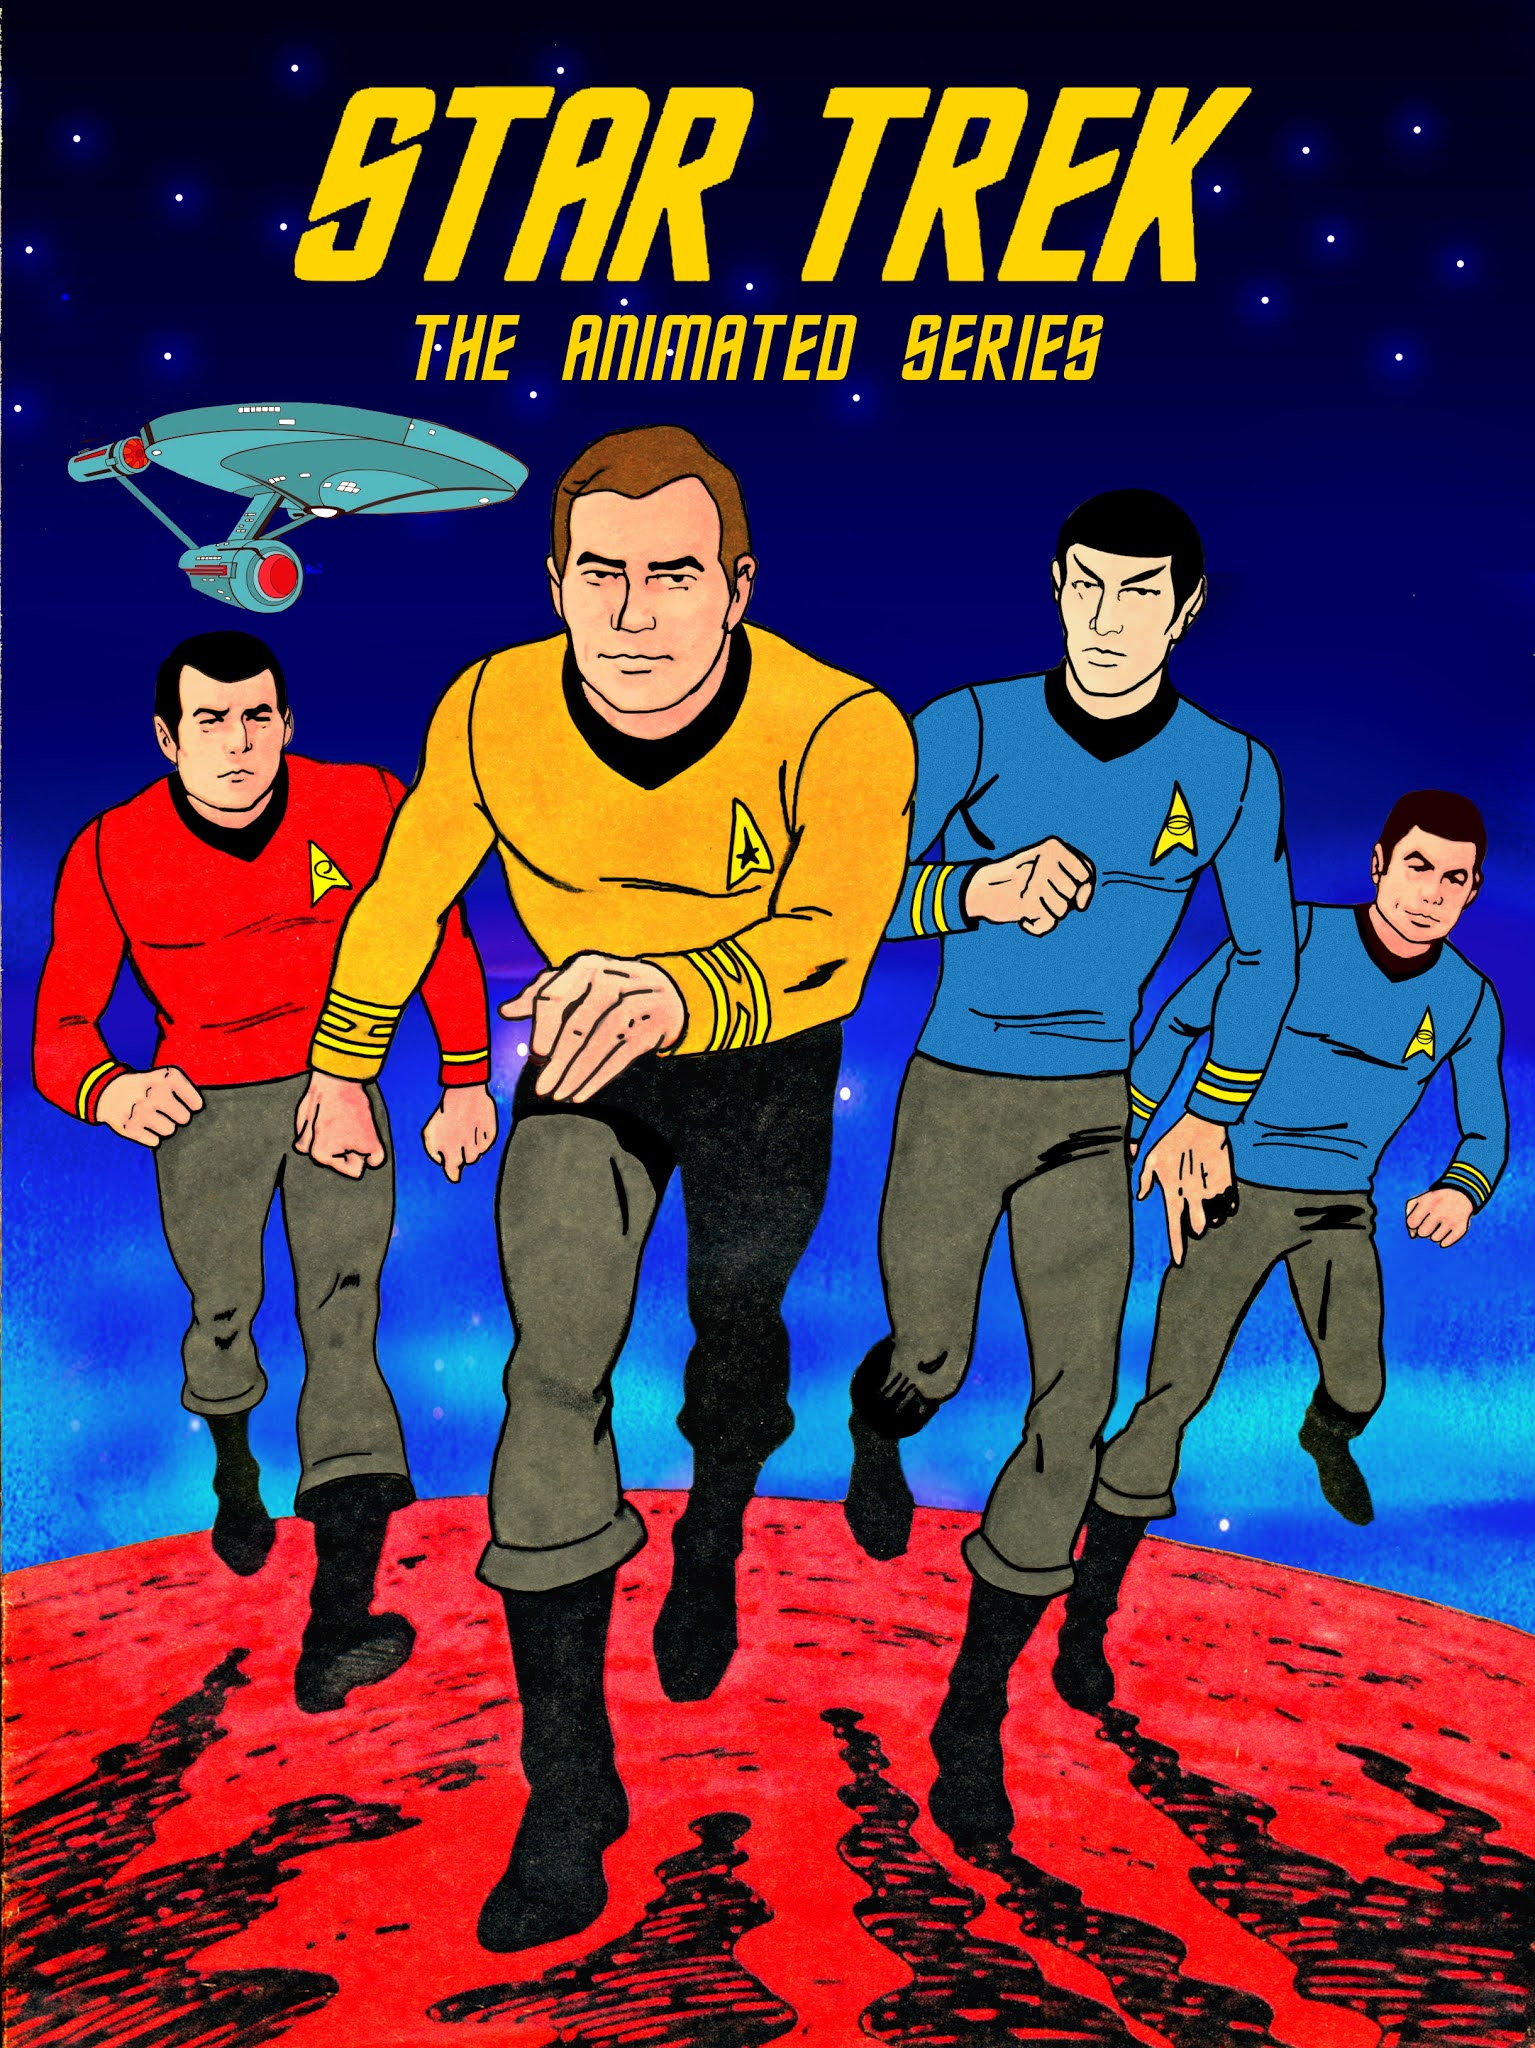 descargar star trek la serie animada completa latino 1973